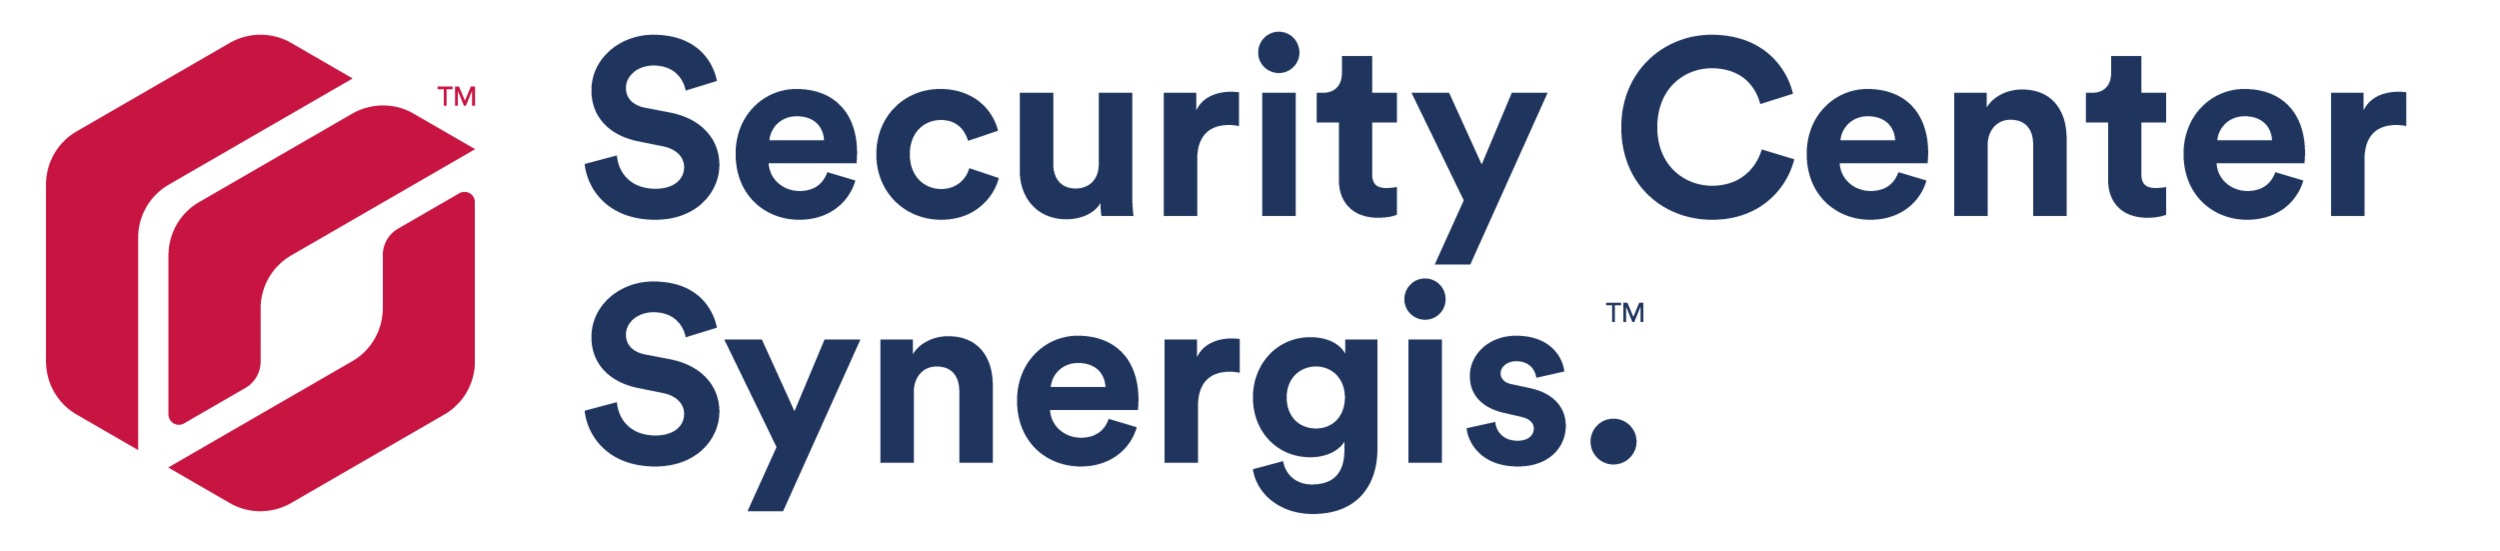 Security Center Synergis logo- colour RGB.png